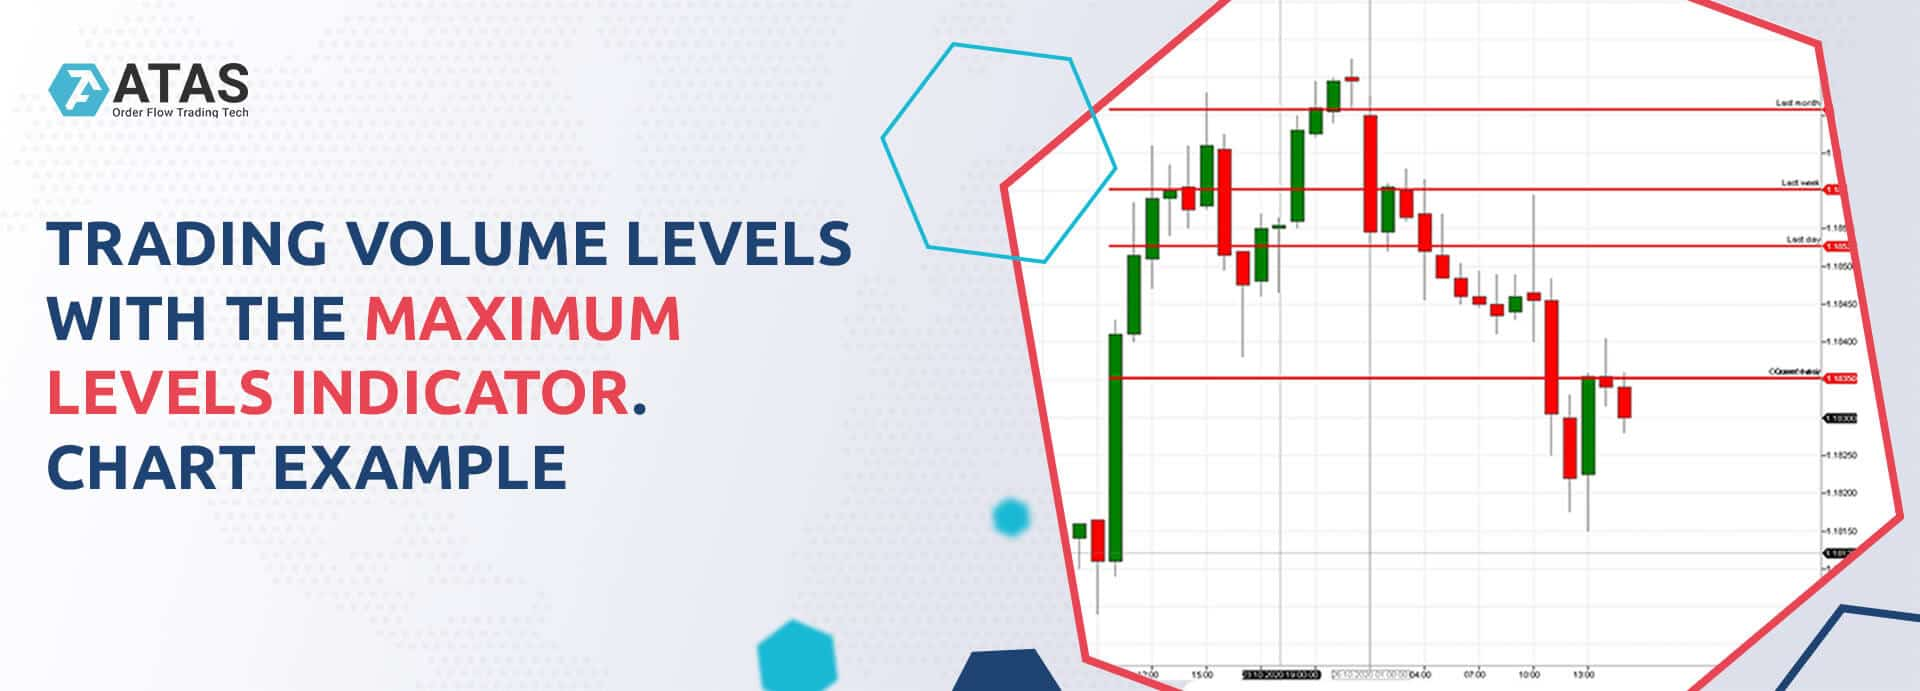 Trading volume levels with the Maximum Levels indicator. Chart example